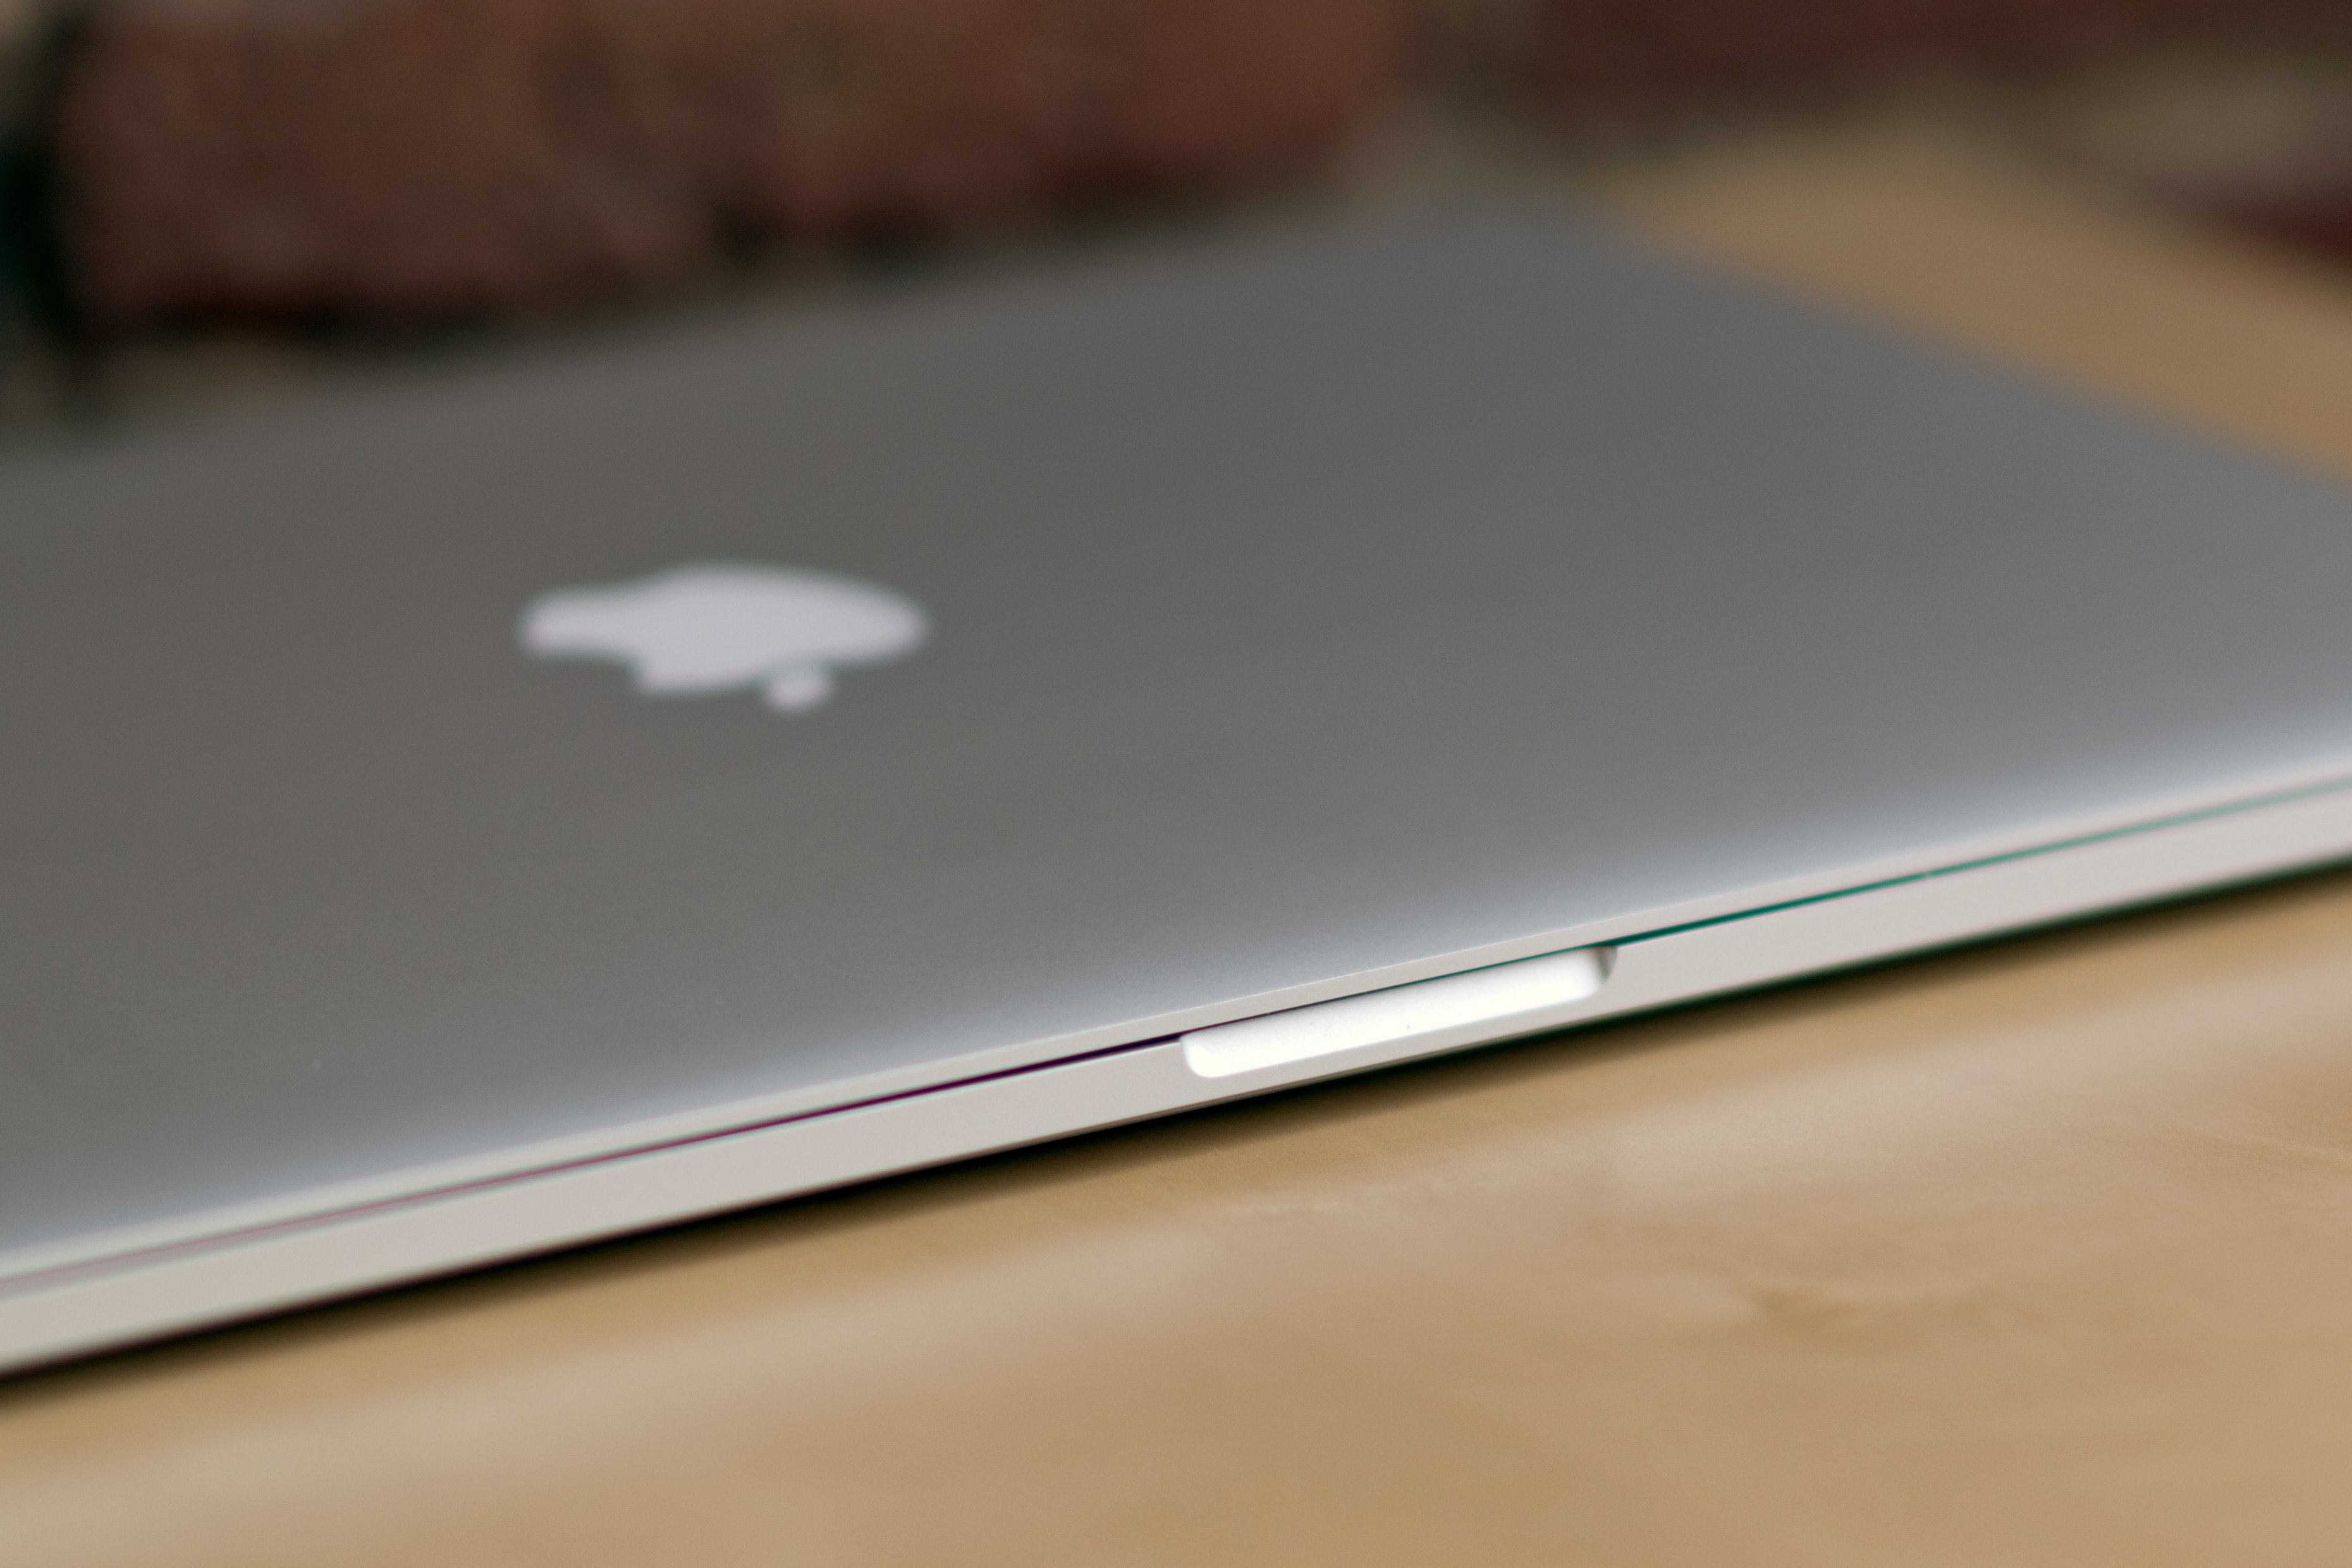 A picture of the Apple MacBook Pro with Retina Display's latch.